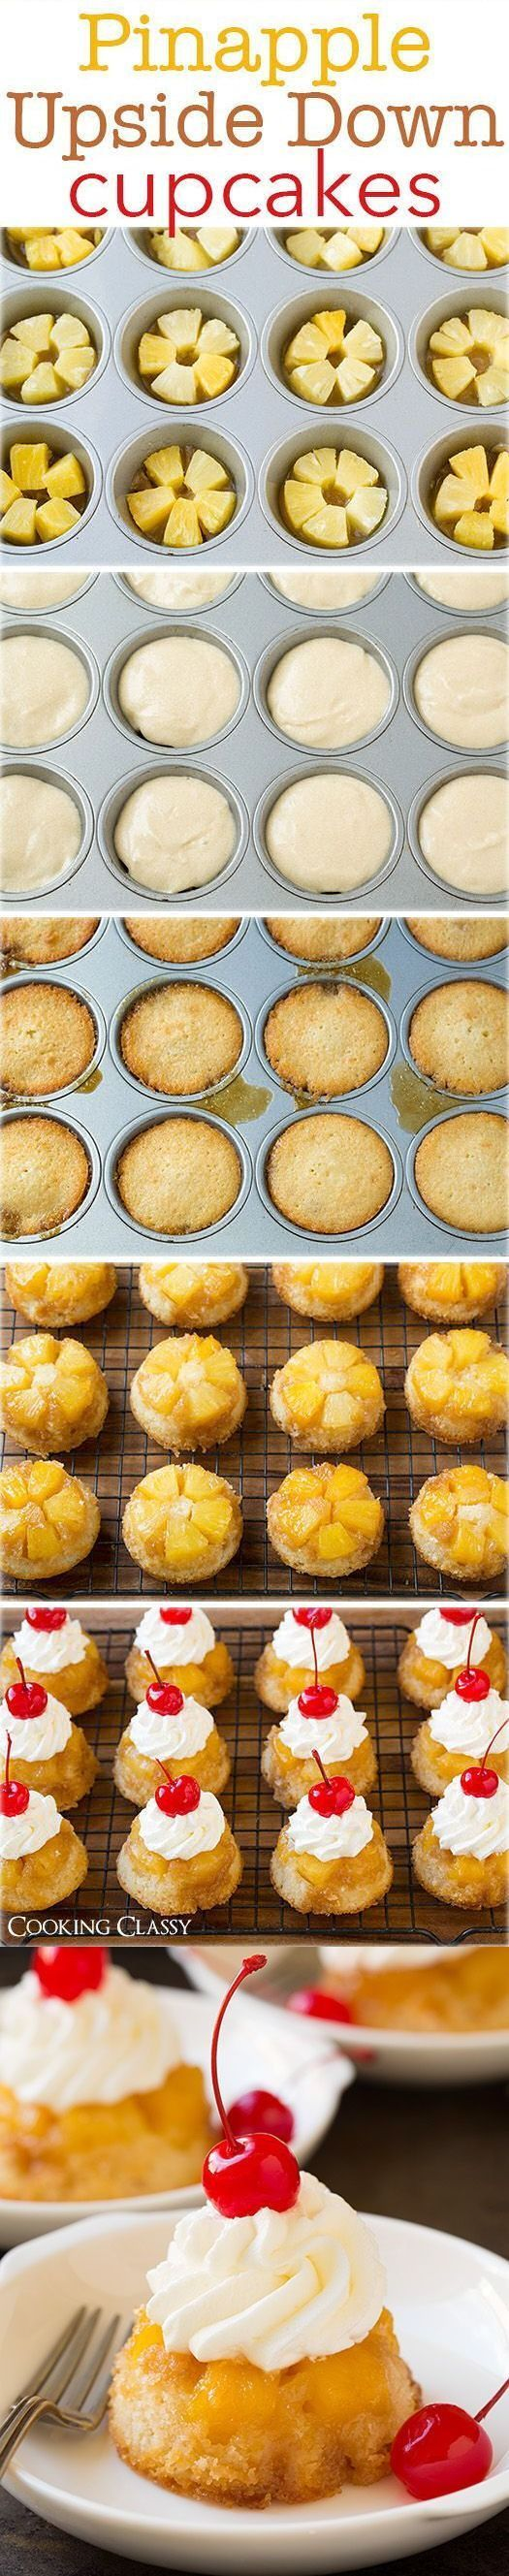 Pineapple Upside Down Cupcakes Recipe food delicious baking recipe recipes dessert recipe dessert recipes food tutorials food tutorial